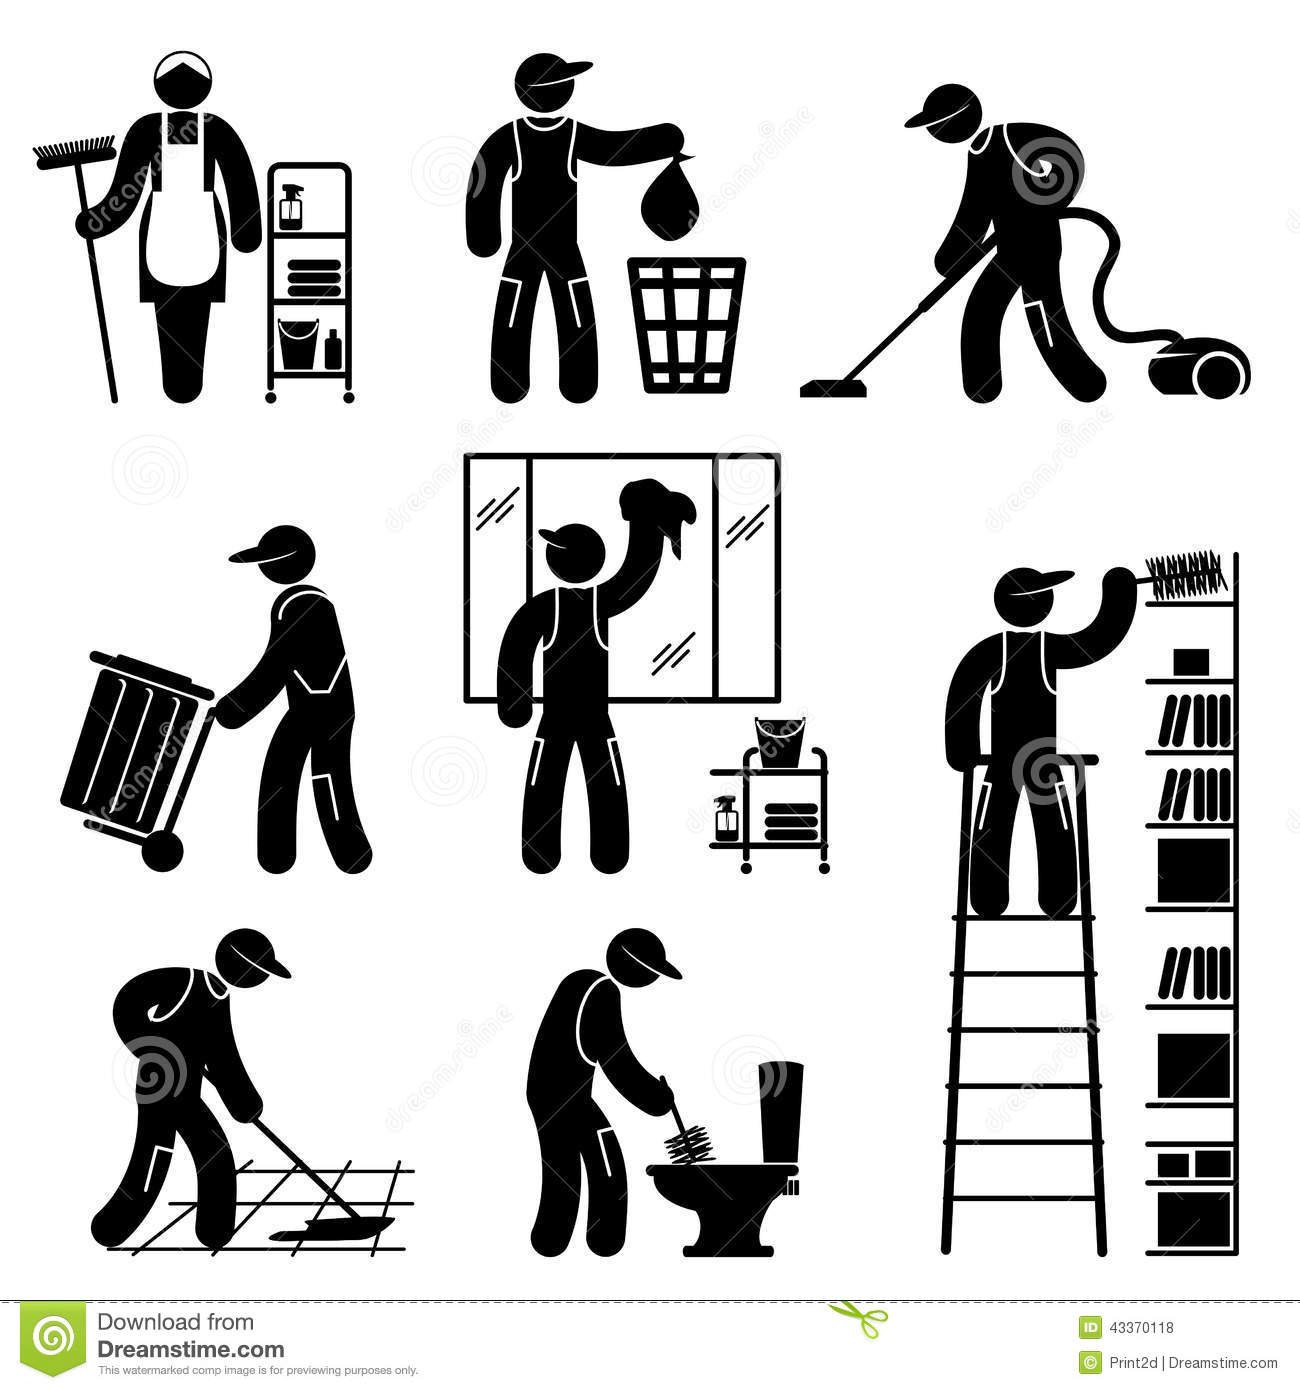 People Cleaning Clip Art